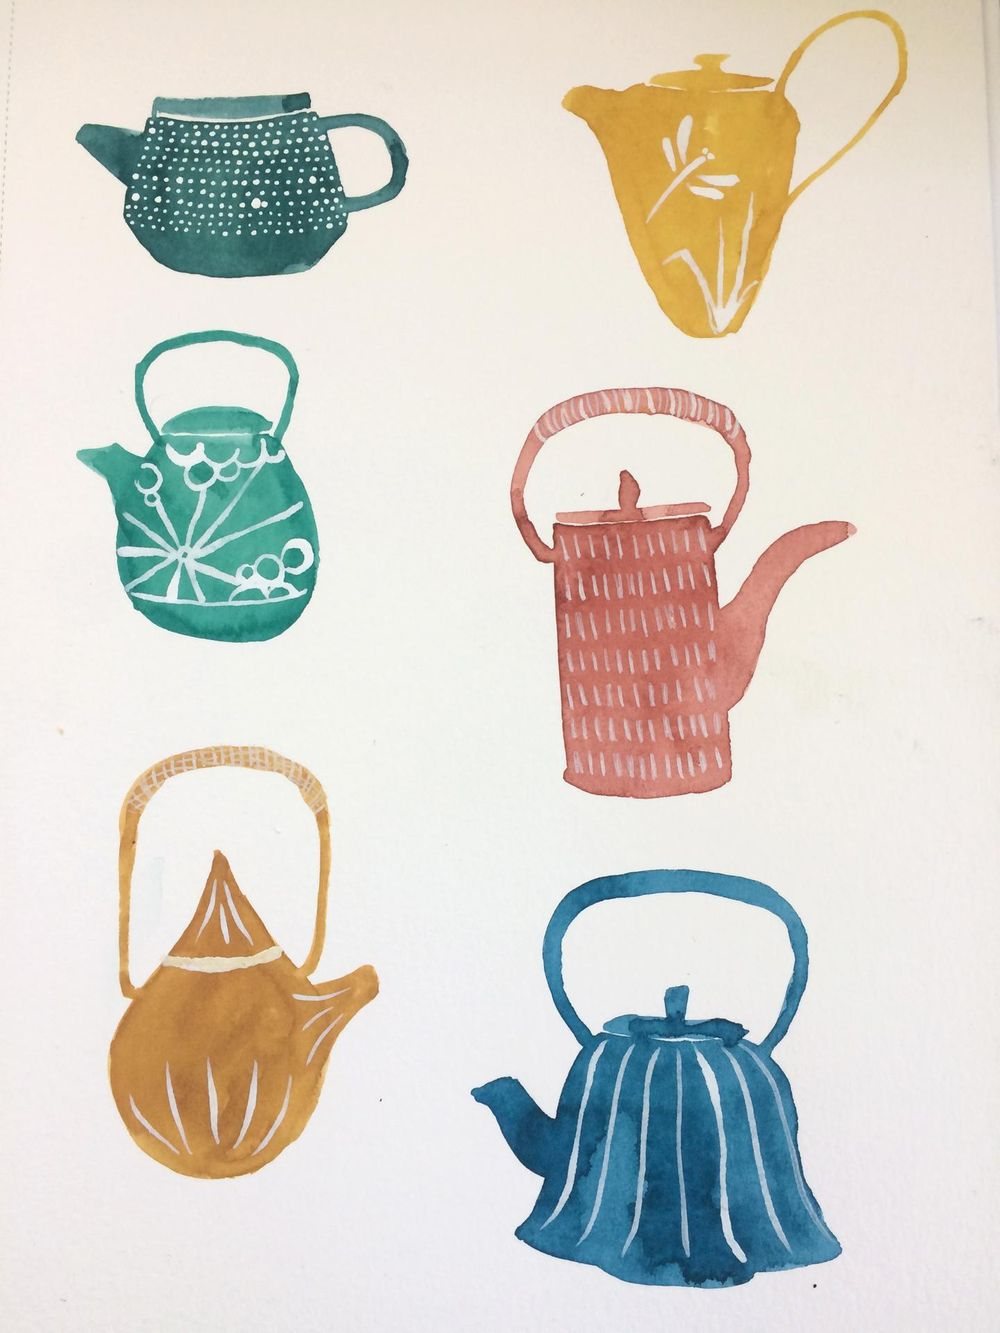 so many nice vases on pinterest... - image 1 - student project